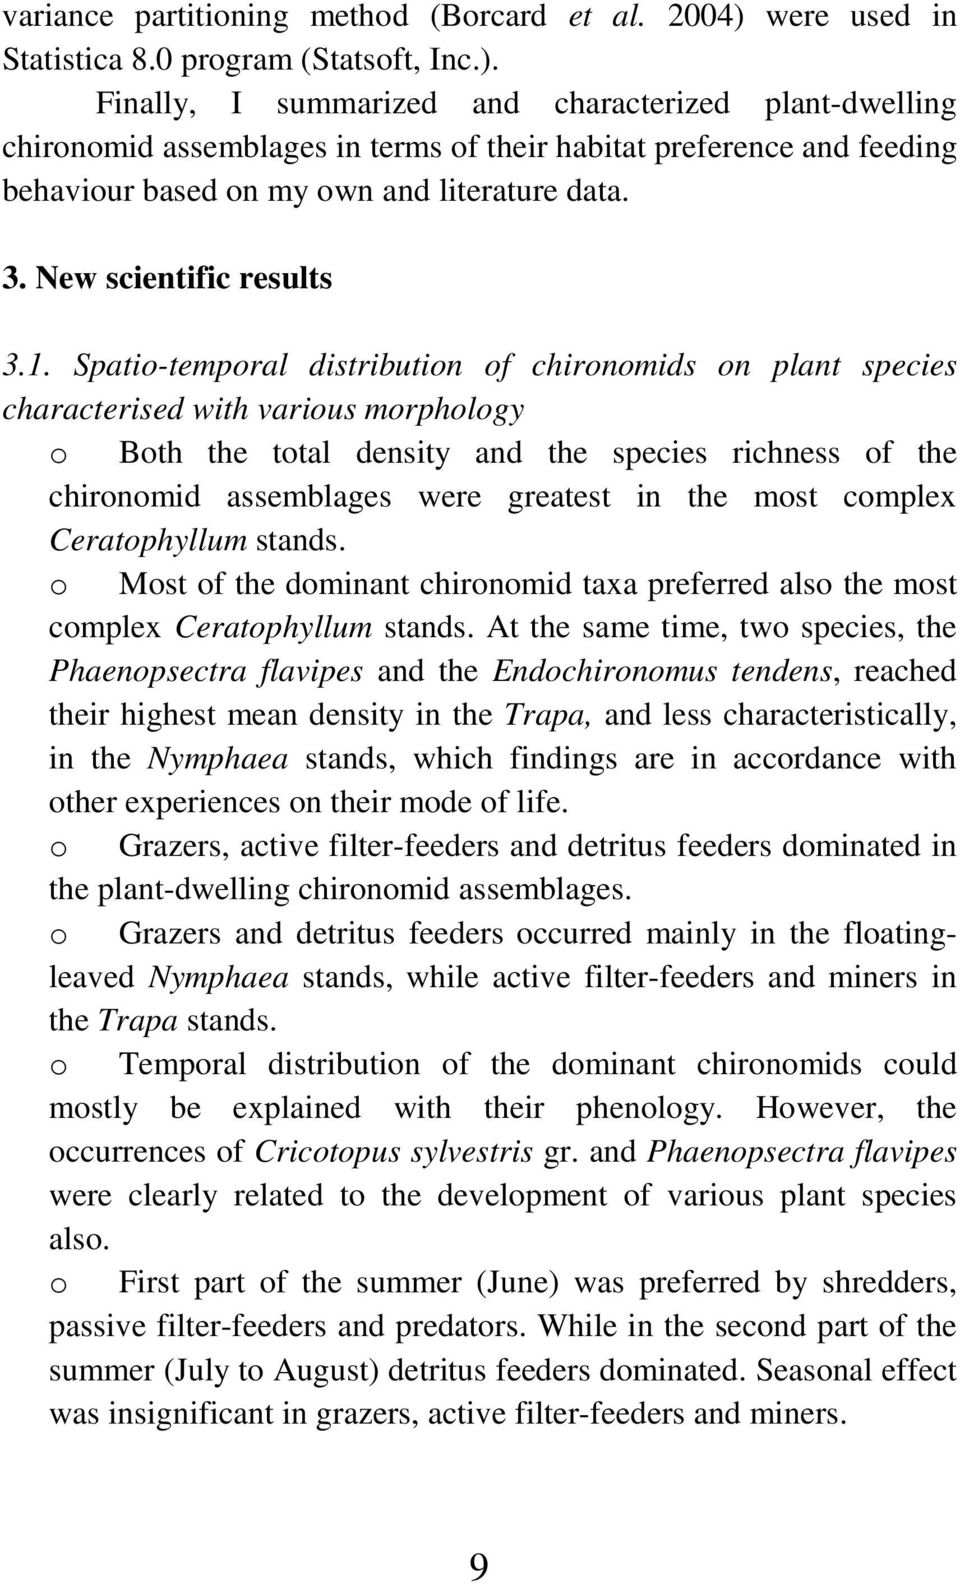 Finally, I summarized and characterized plant-dwelling chironomid assemblages in terms of their habitat preference and feeding behaviour based on my own and literature data. 3.